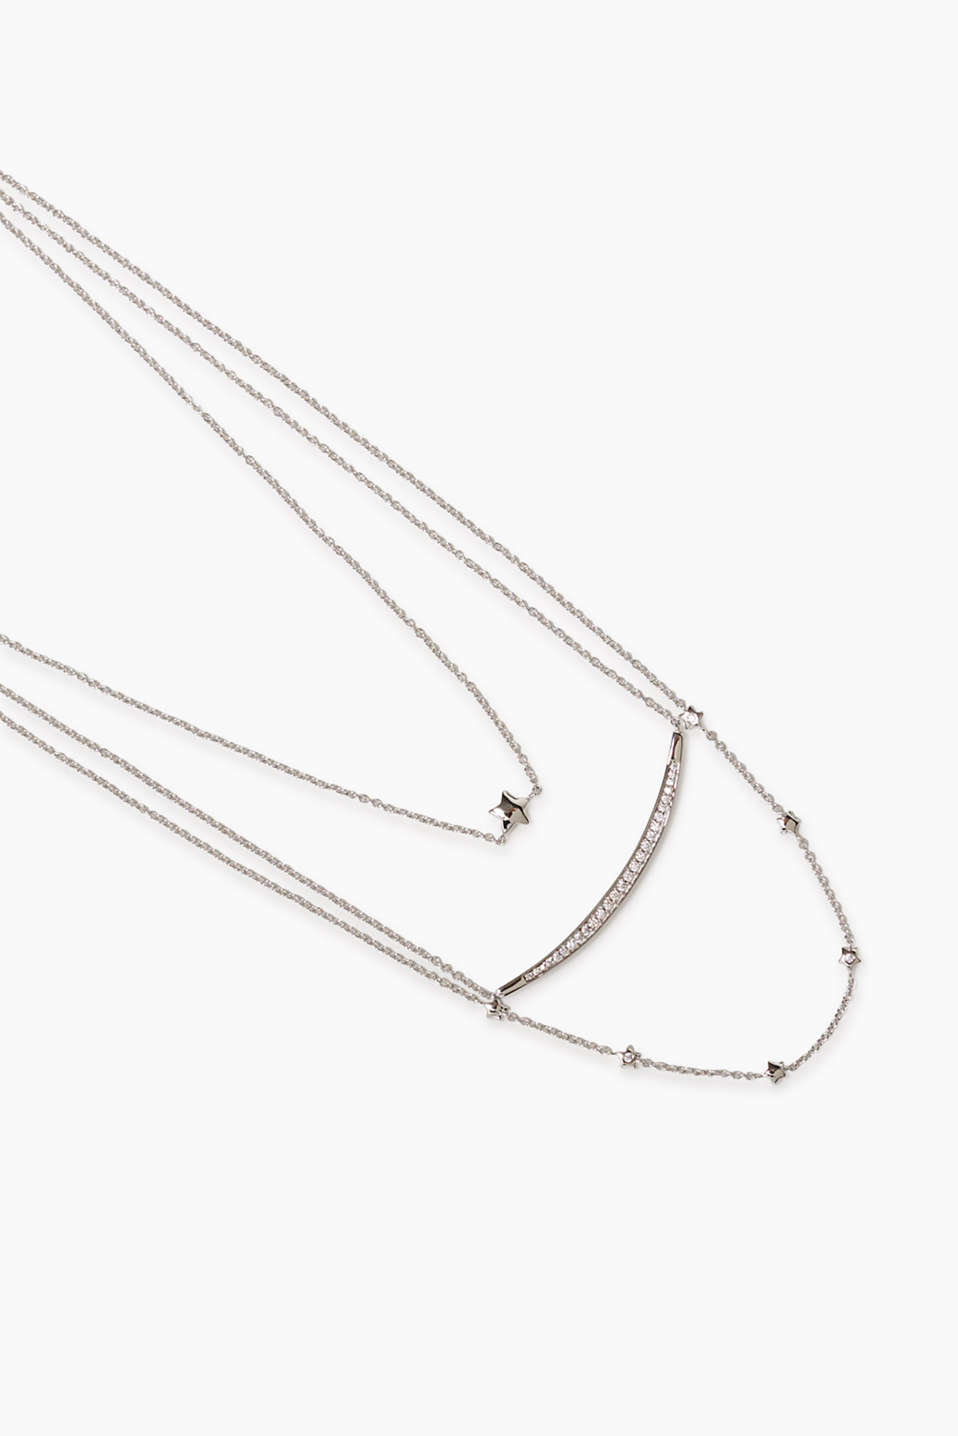 Three-in-one necklace with various pendants and zirconia settings, can be worn as a trio, duo or alone